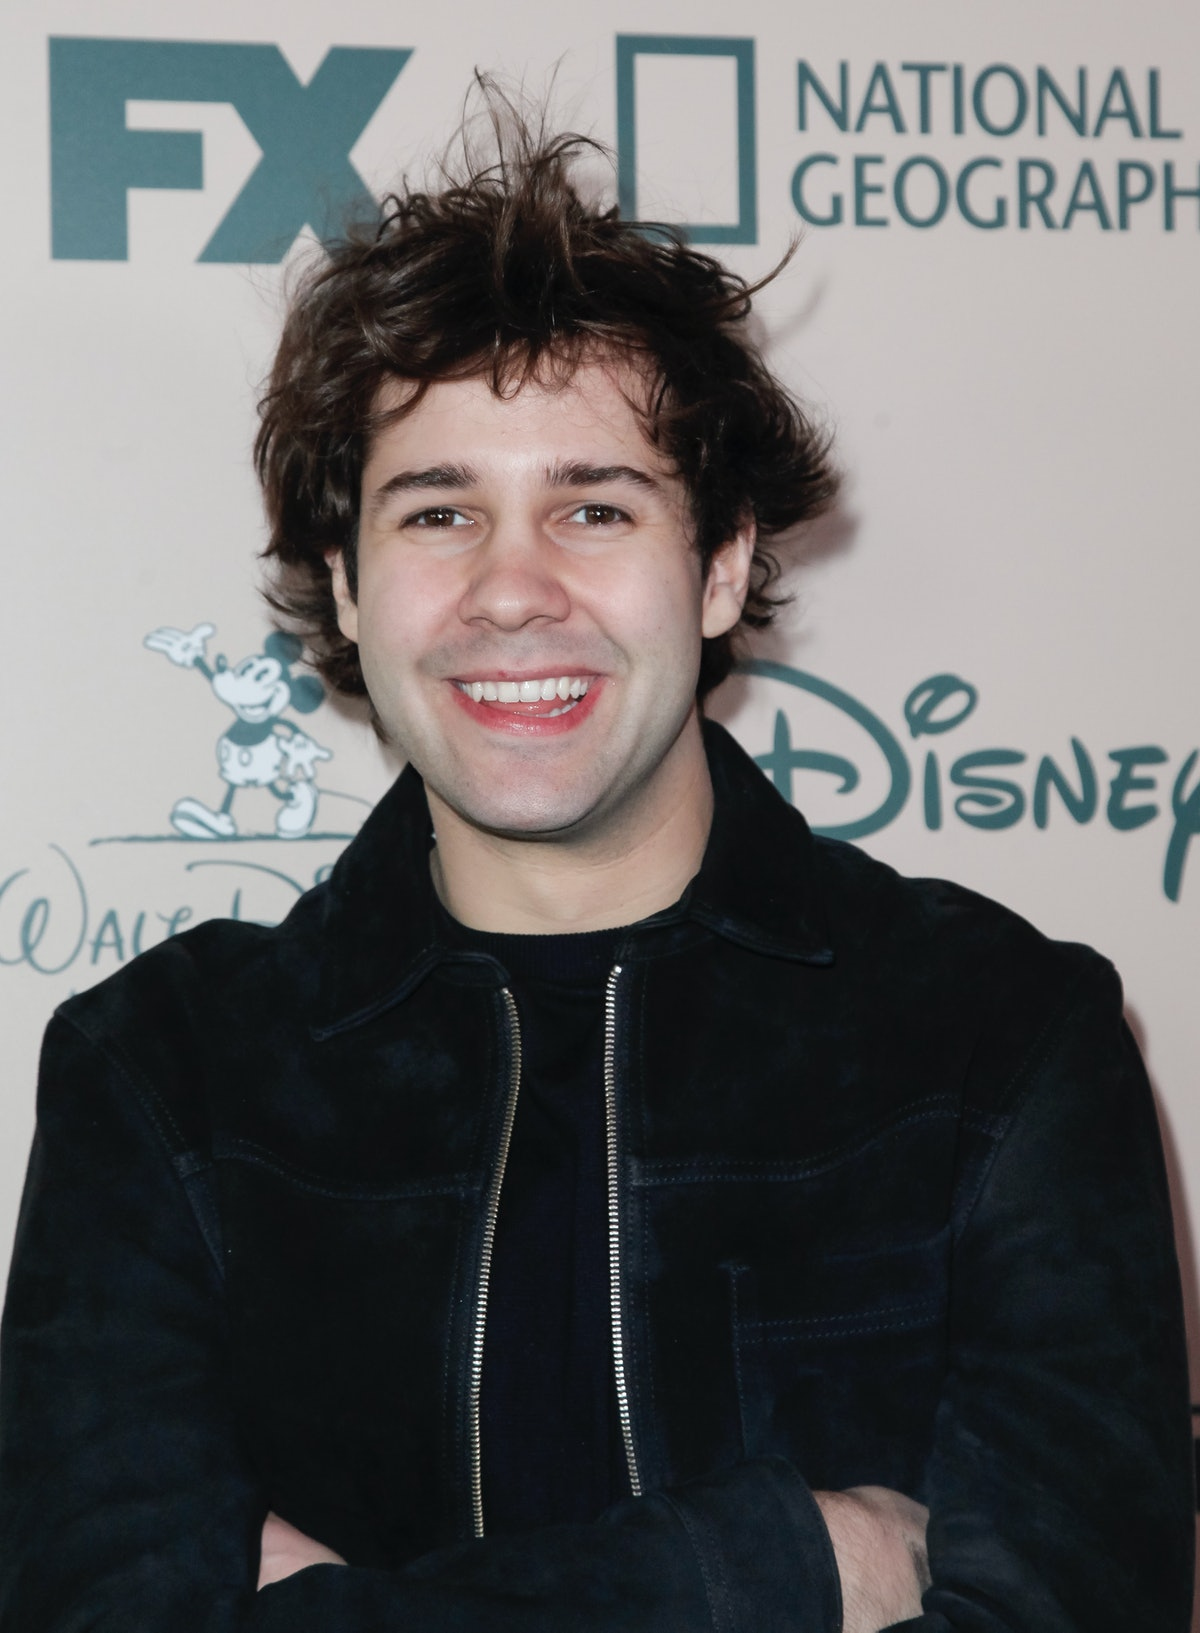 David Dobrik hits the red carpet at an event for FX.